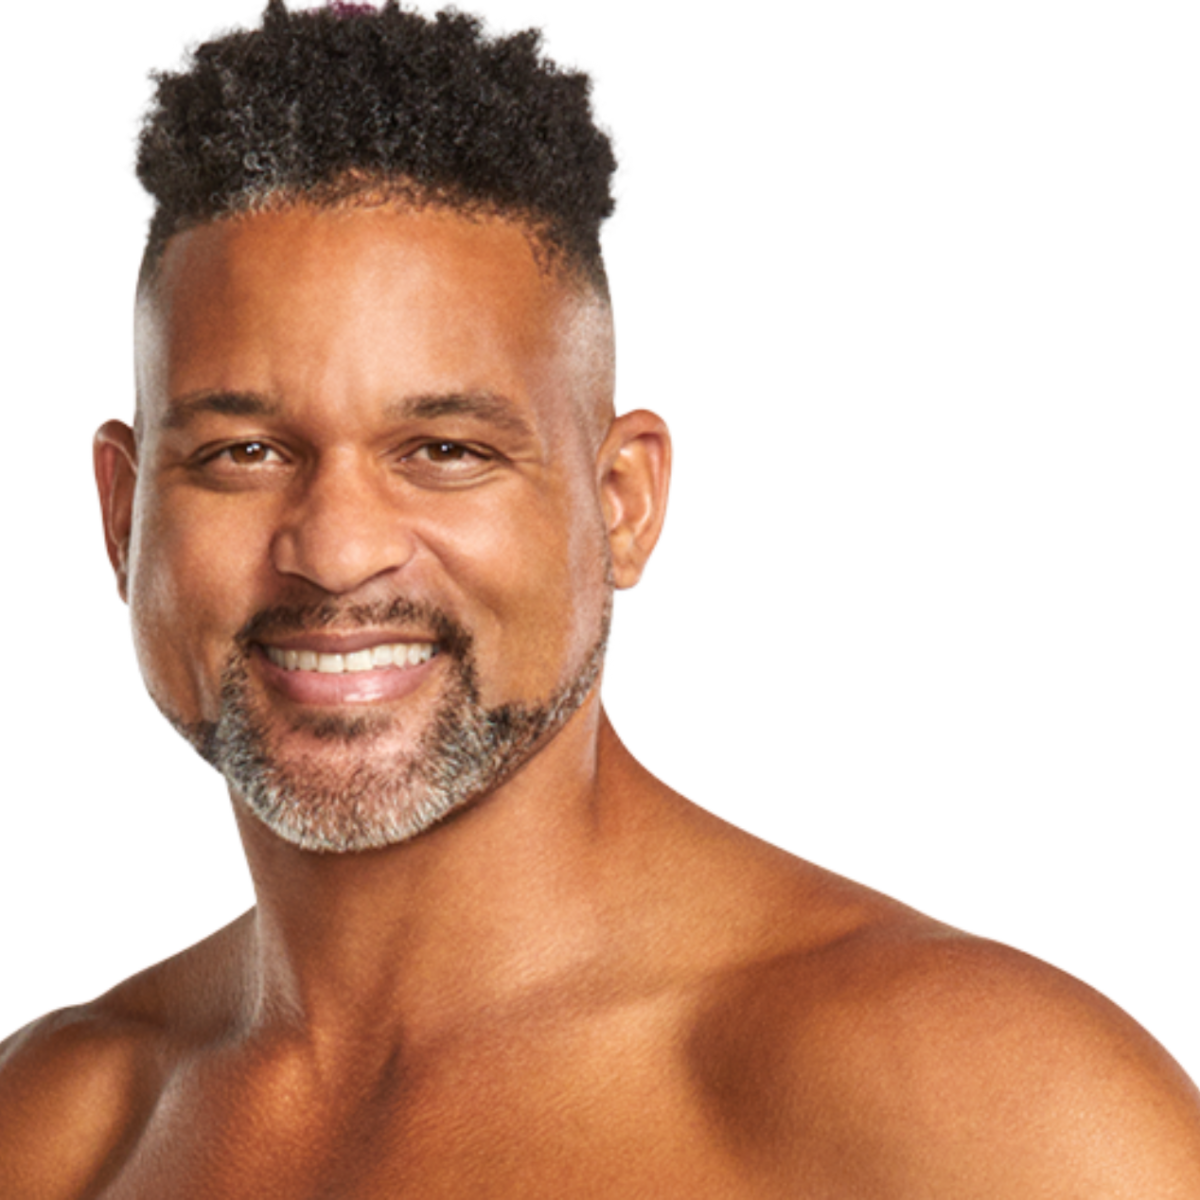 Shaun T's Hair Changed During The Pandemic And It Led To A Change In The Way He Saw Himself And Fitness